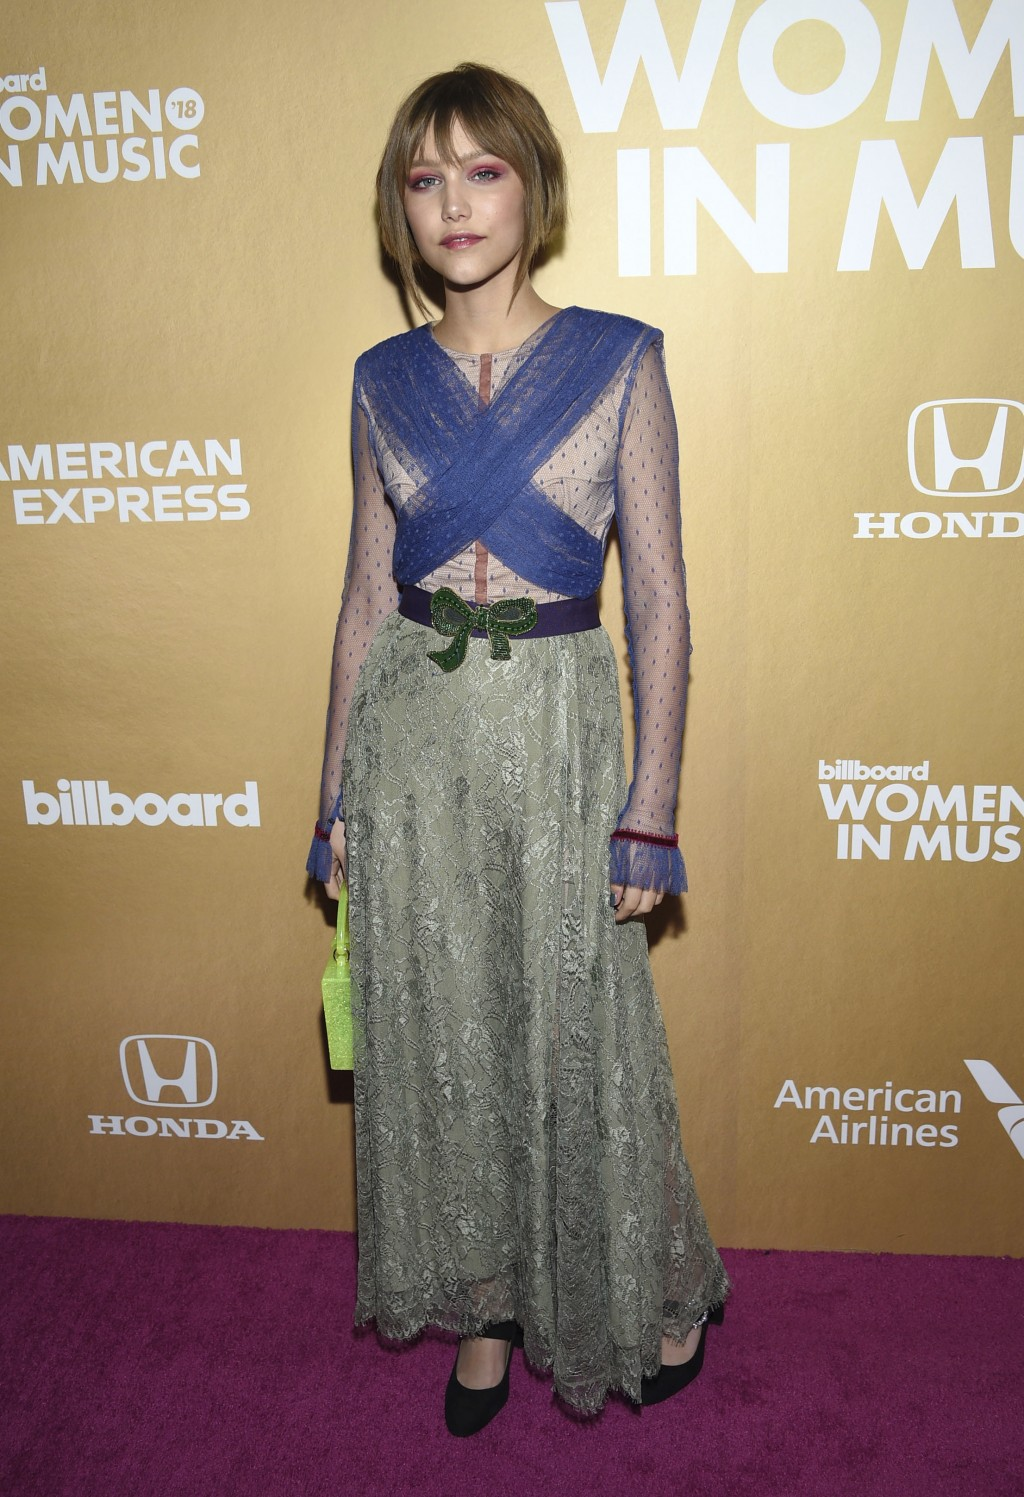 Grace VanderWaal attends the 13th annual Billboard Women in Music event at Pier 36 on Thursday, Dec. 6, 2018, in New York. (Photo by Evan Agostini/Inv